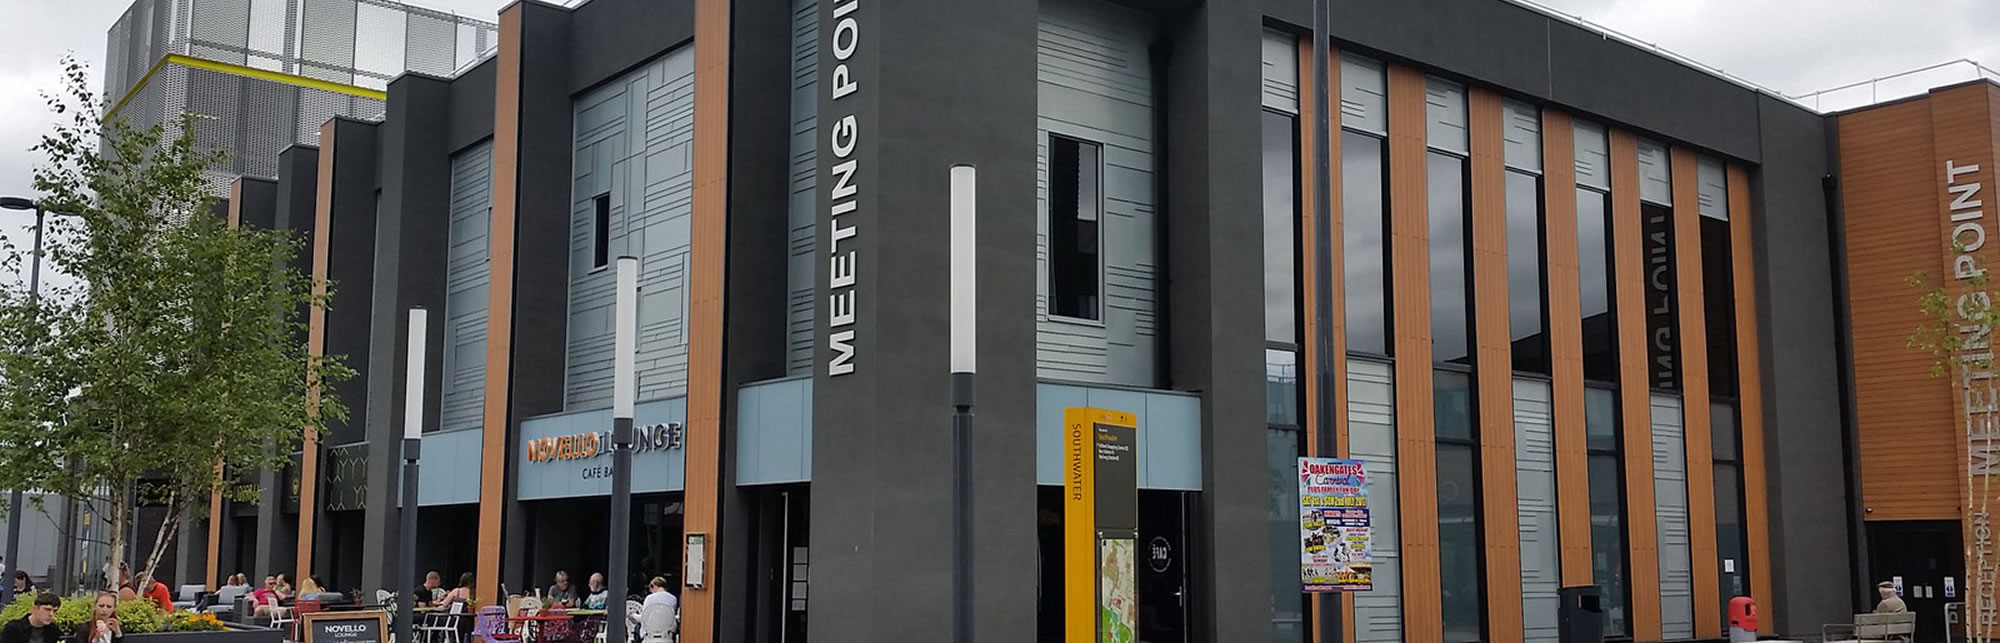 Meeting Point House - The central place to meet in Telford